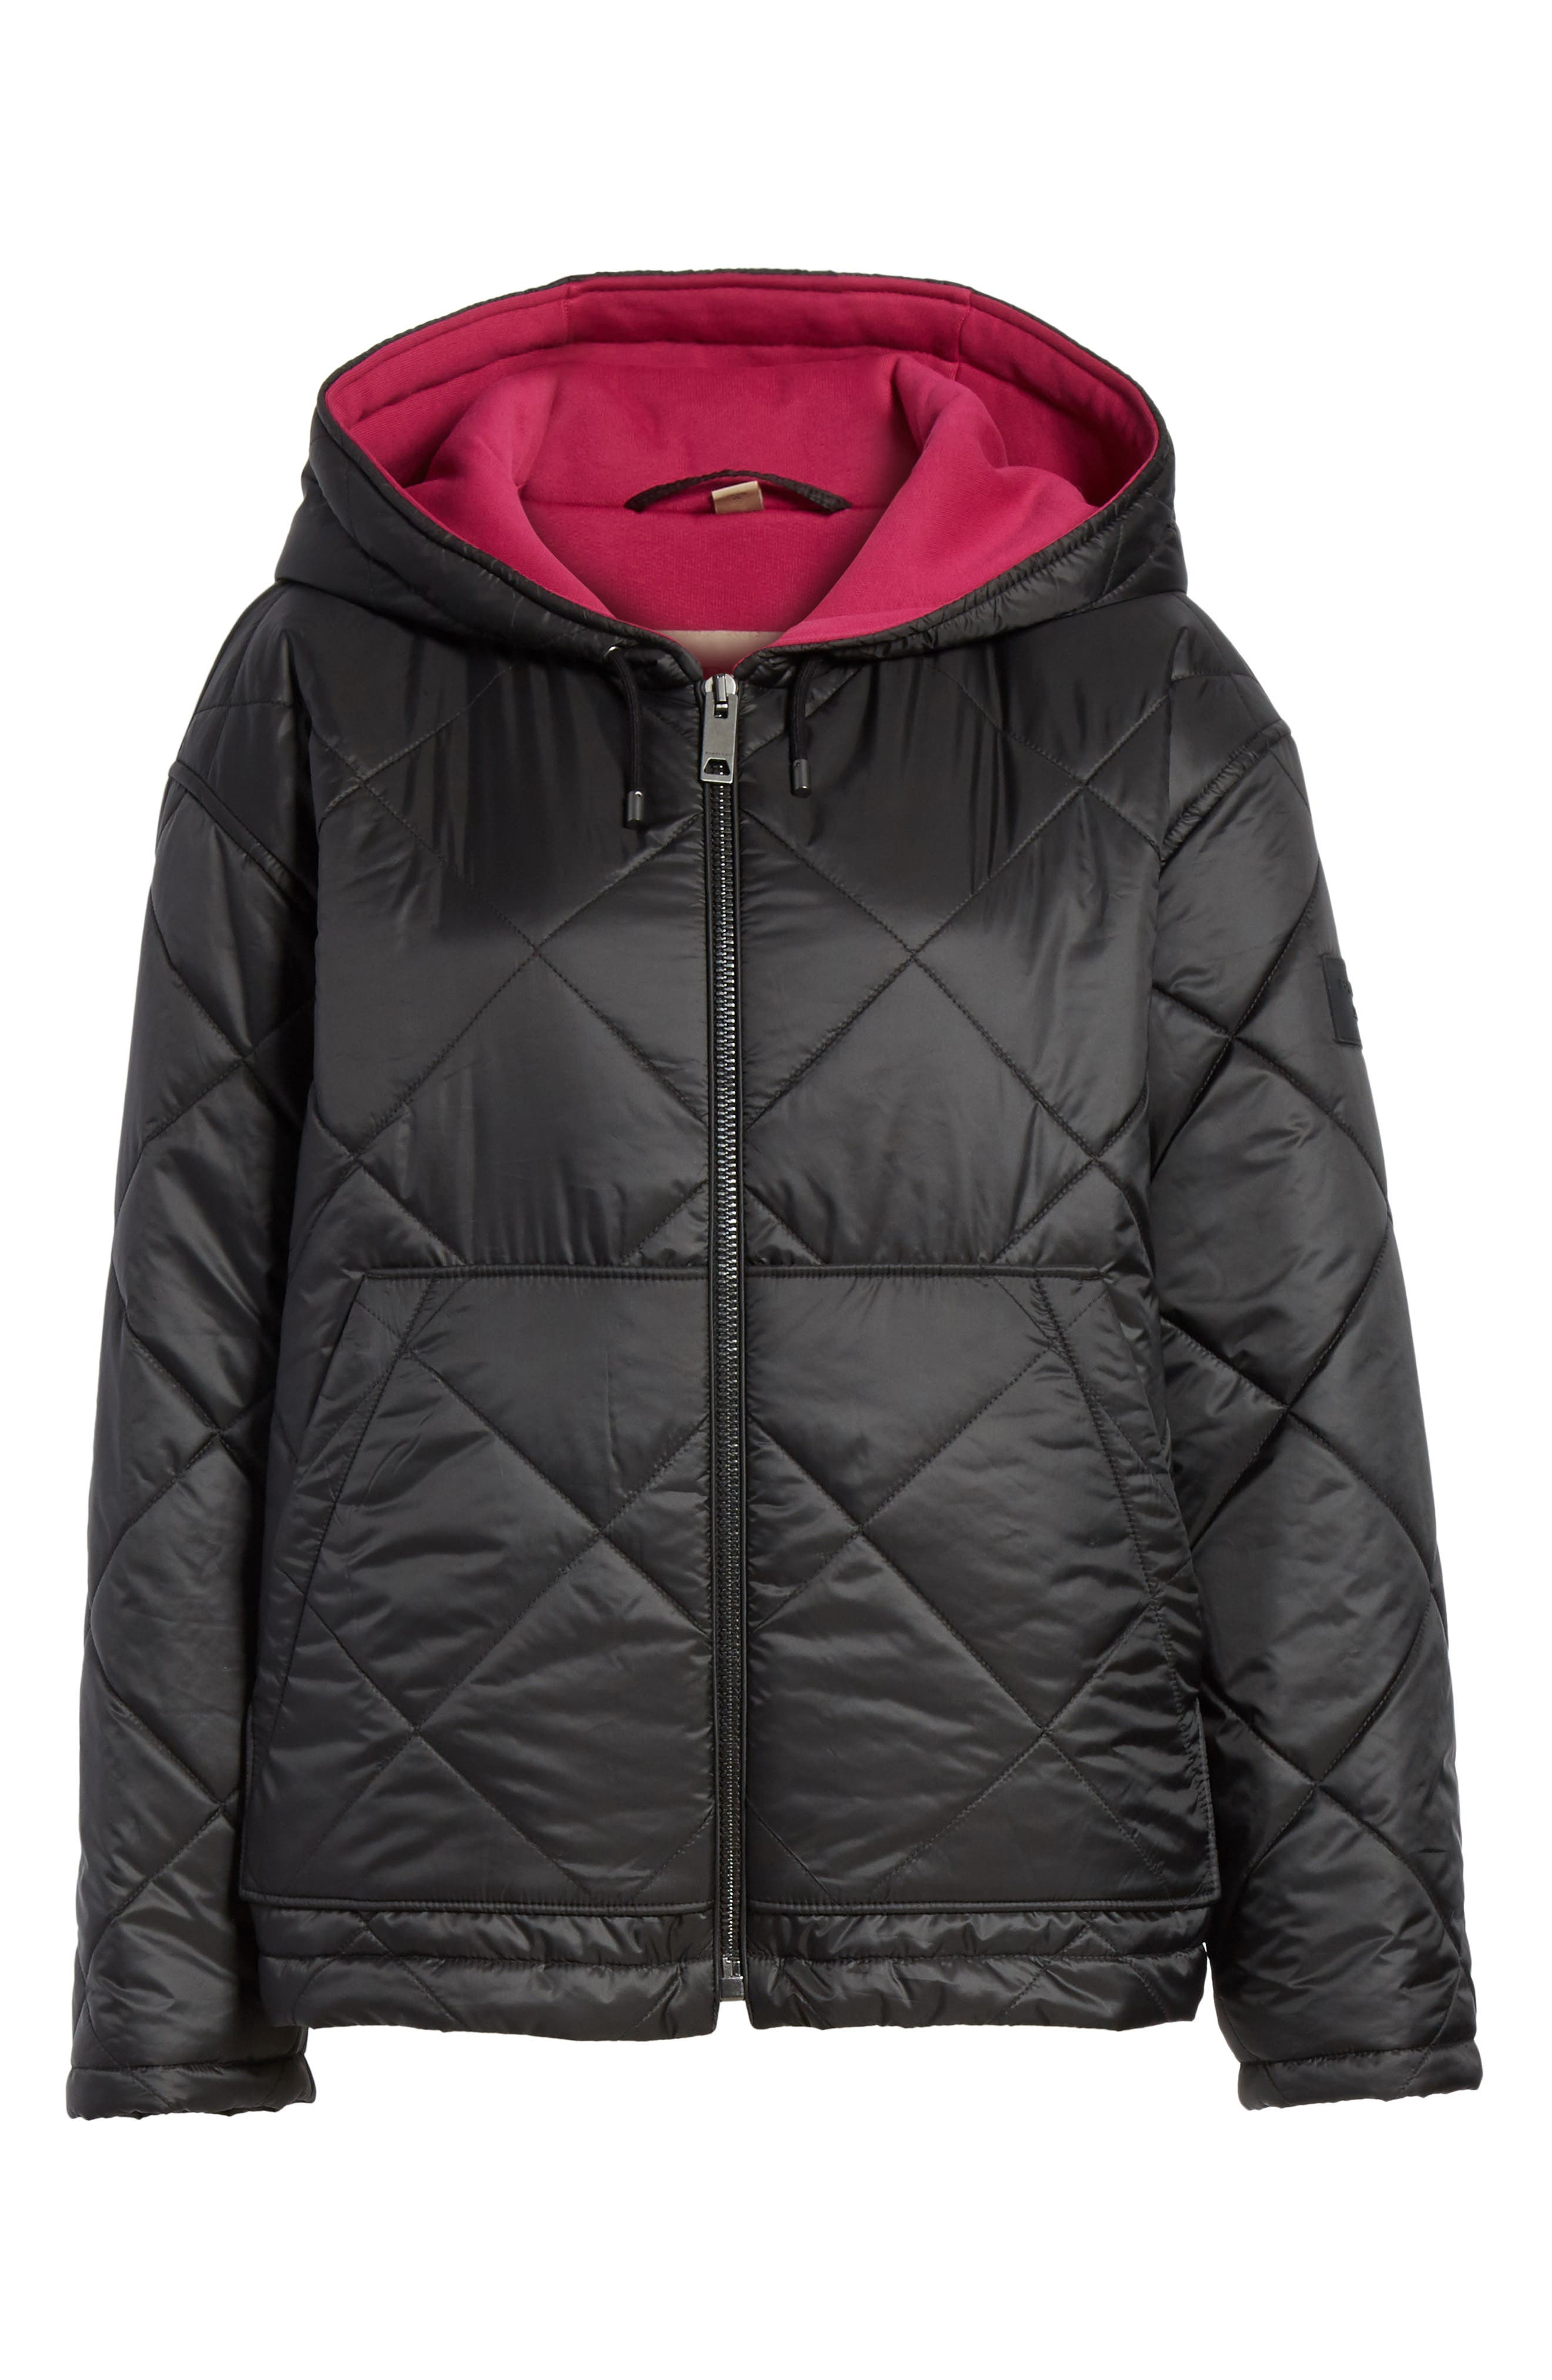 Tyneham Lined Quilted Jacket,                             Alternate thumbnail 6, color,                             Black